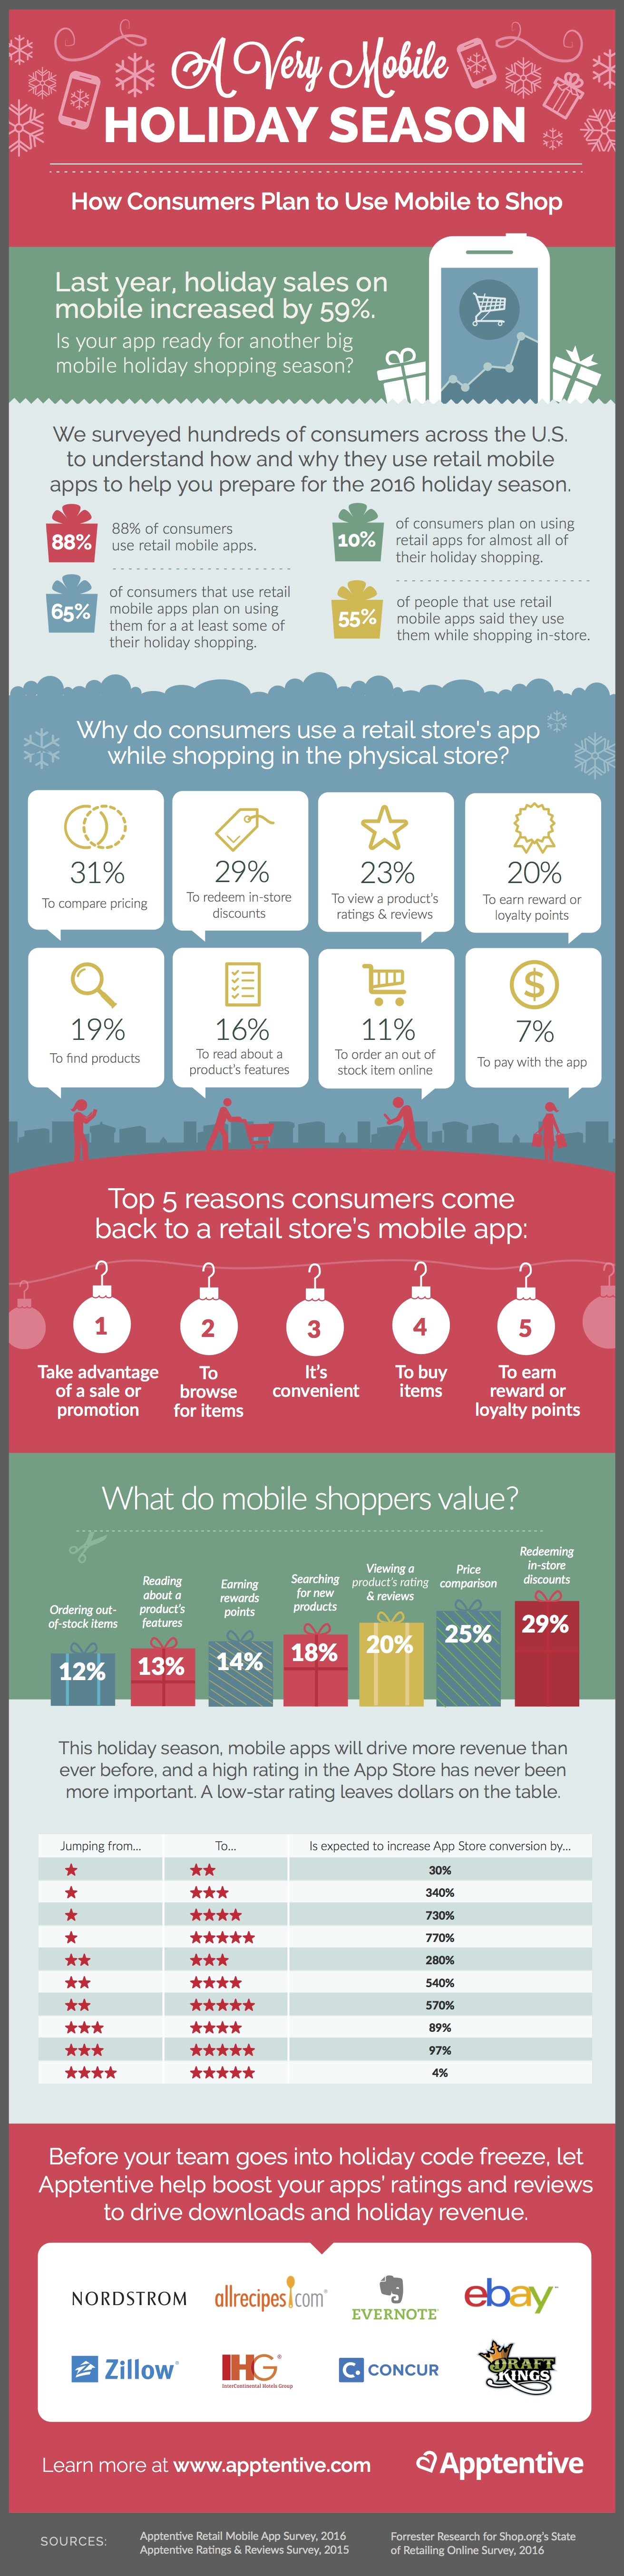 Holiday shopping on retail mobile apps